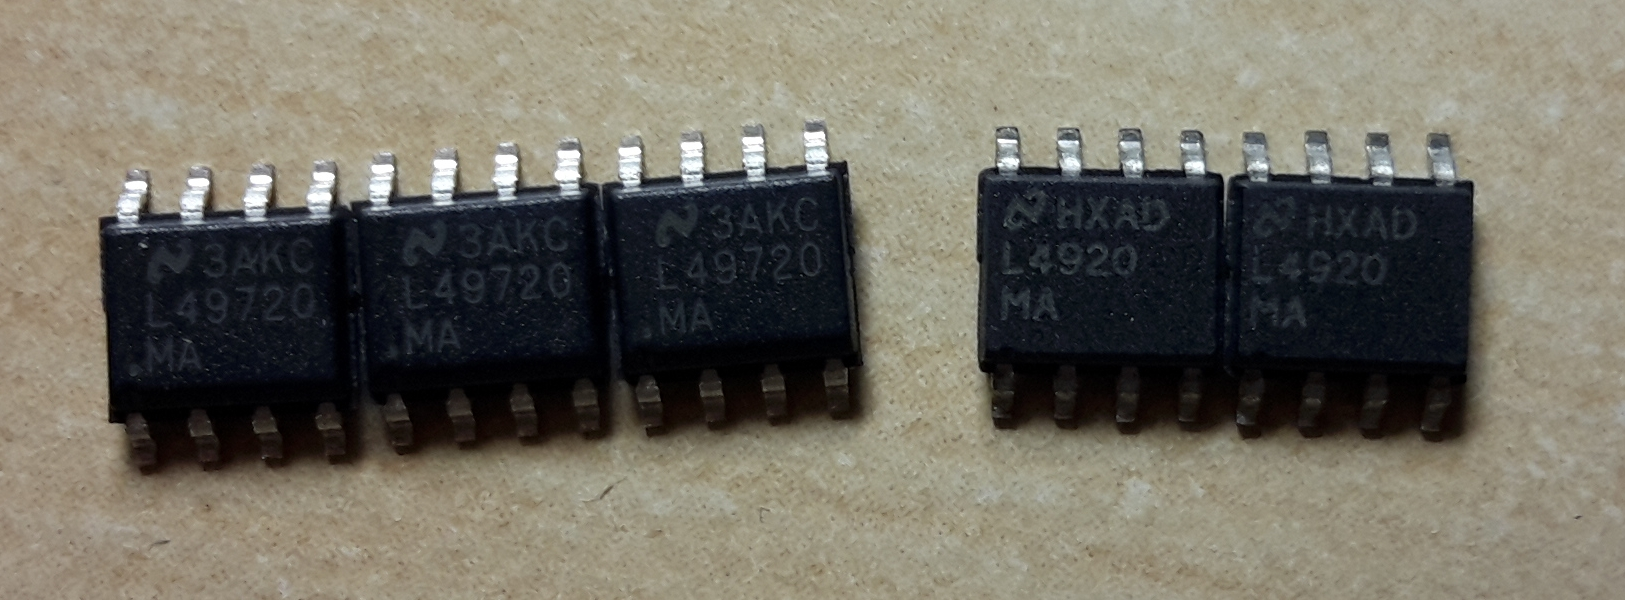 Lme49720 Fake Or Not Audio Forum Ti E2e Community Highspeed Amplifier Circuits Analog Wire Blogs Oleg